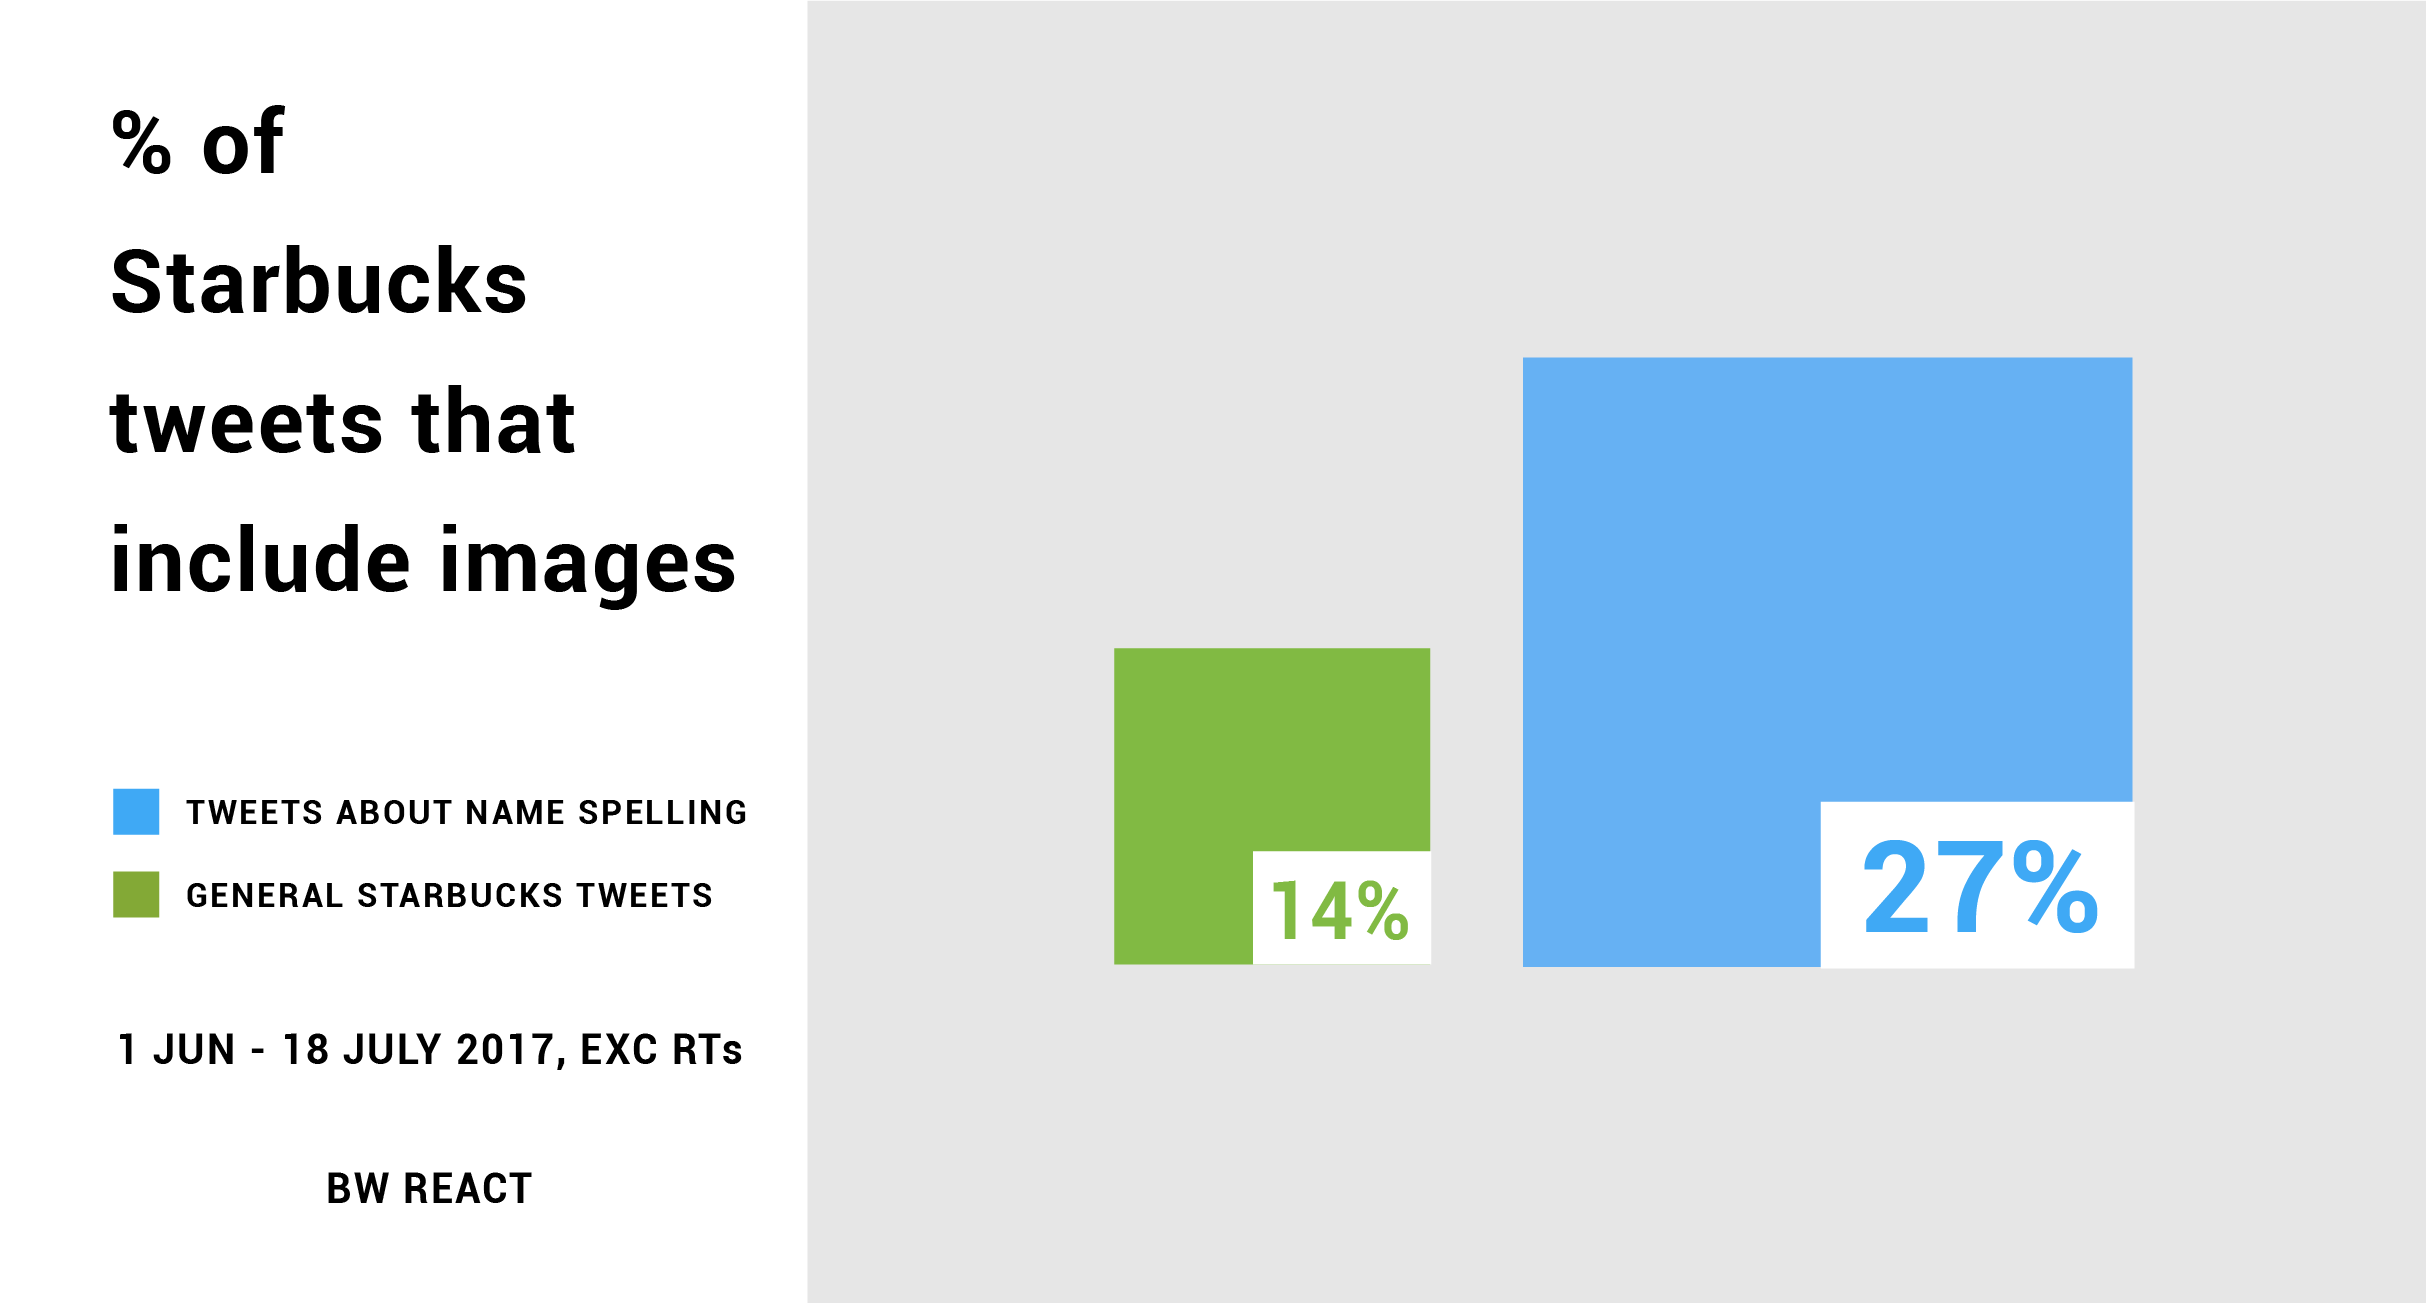 Chart shows that 27% of tweets about name spelling and starbucks contain an image compared to 14% of non-specific tweets about Starbucks.